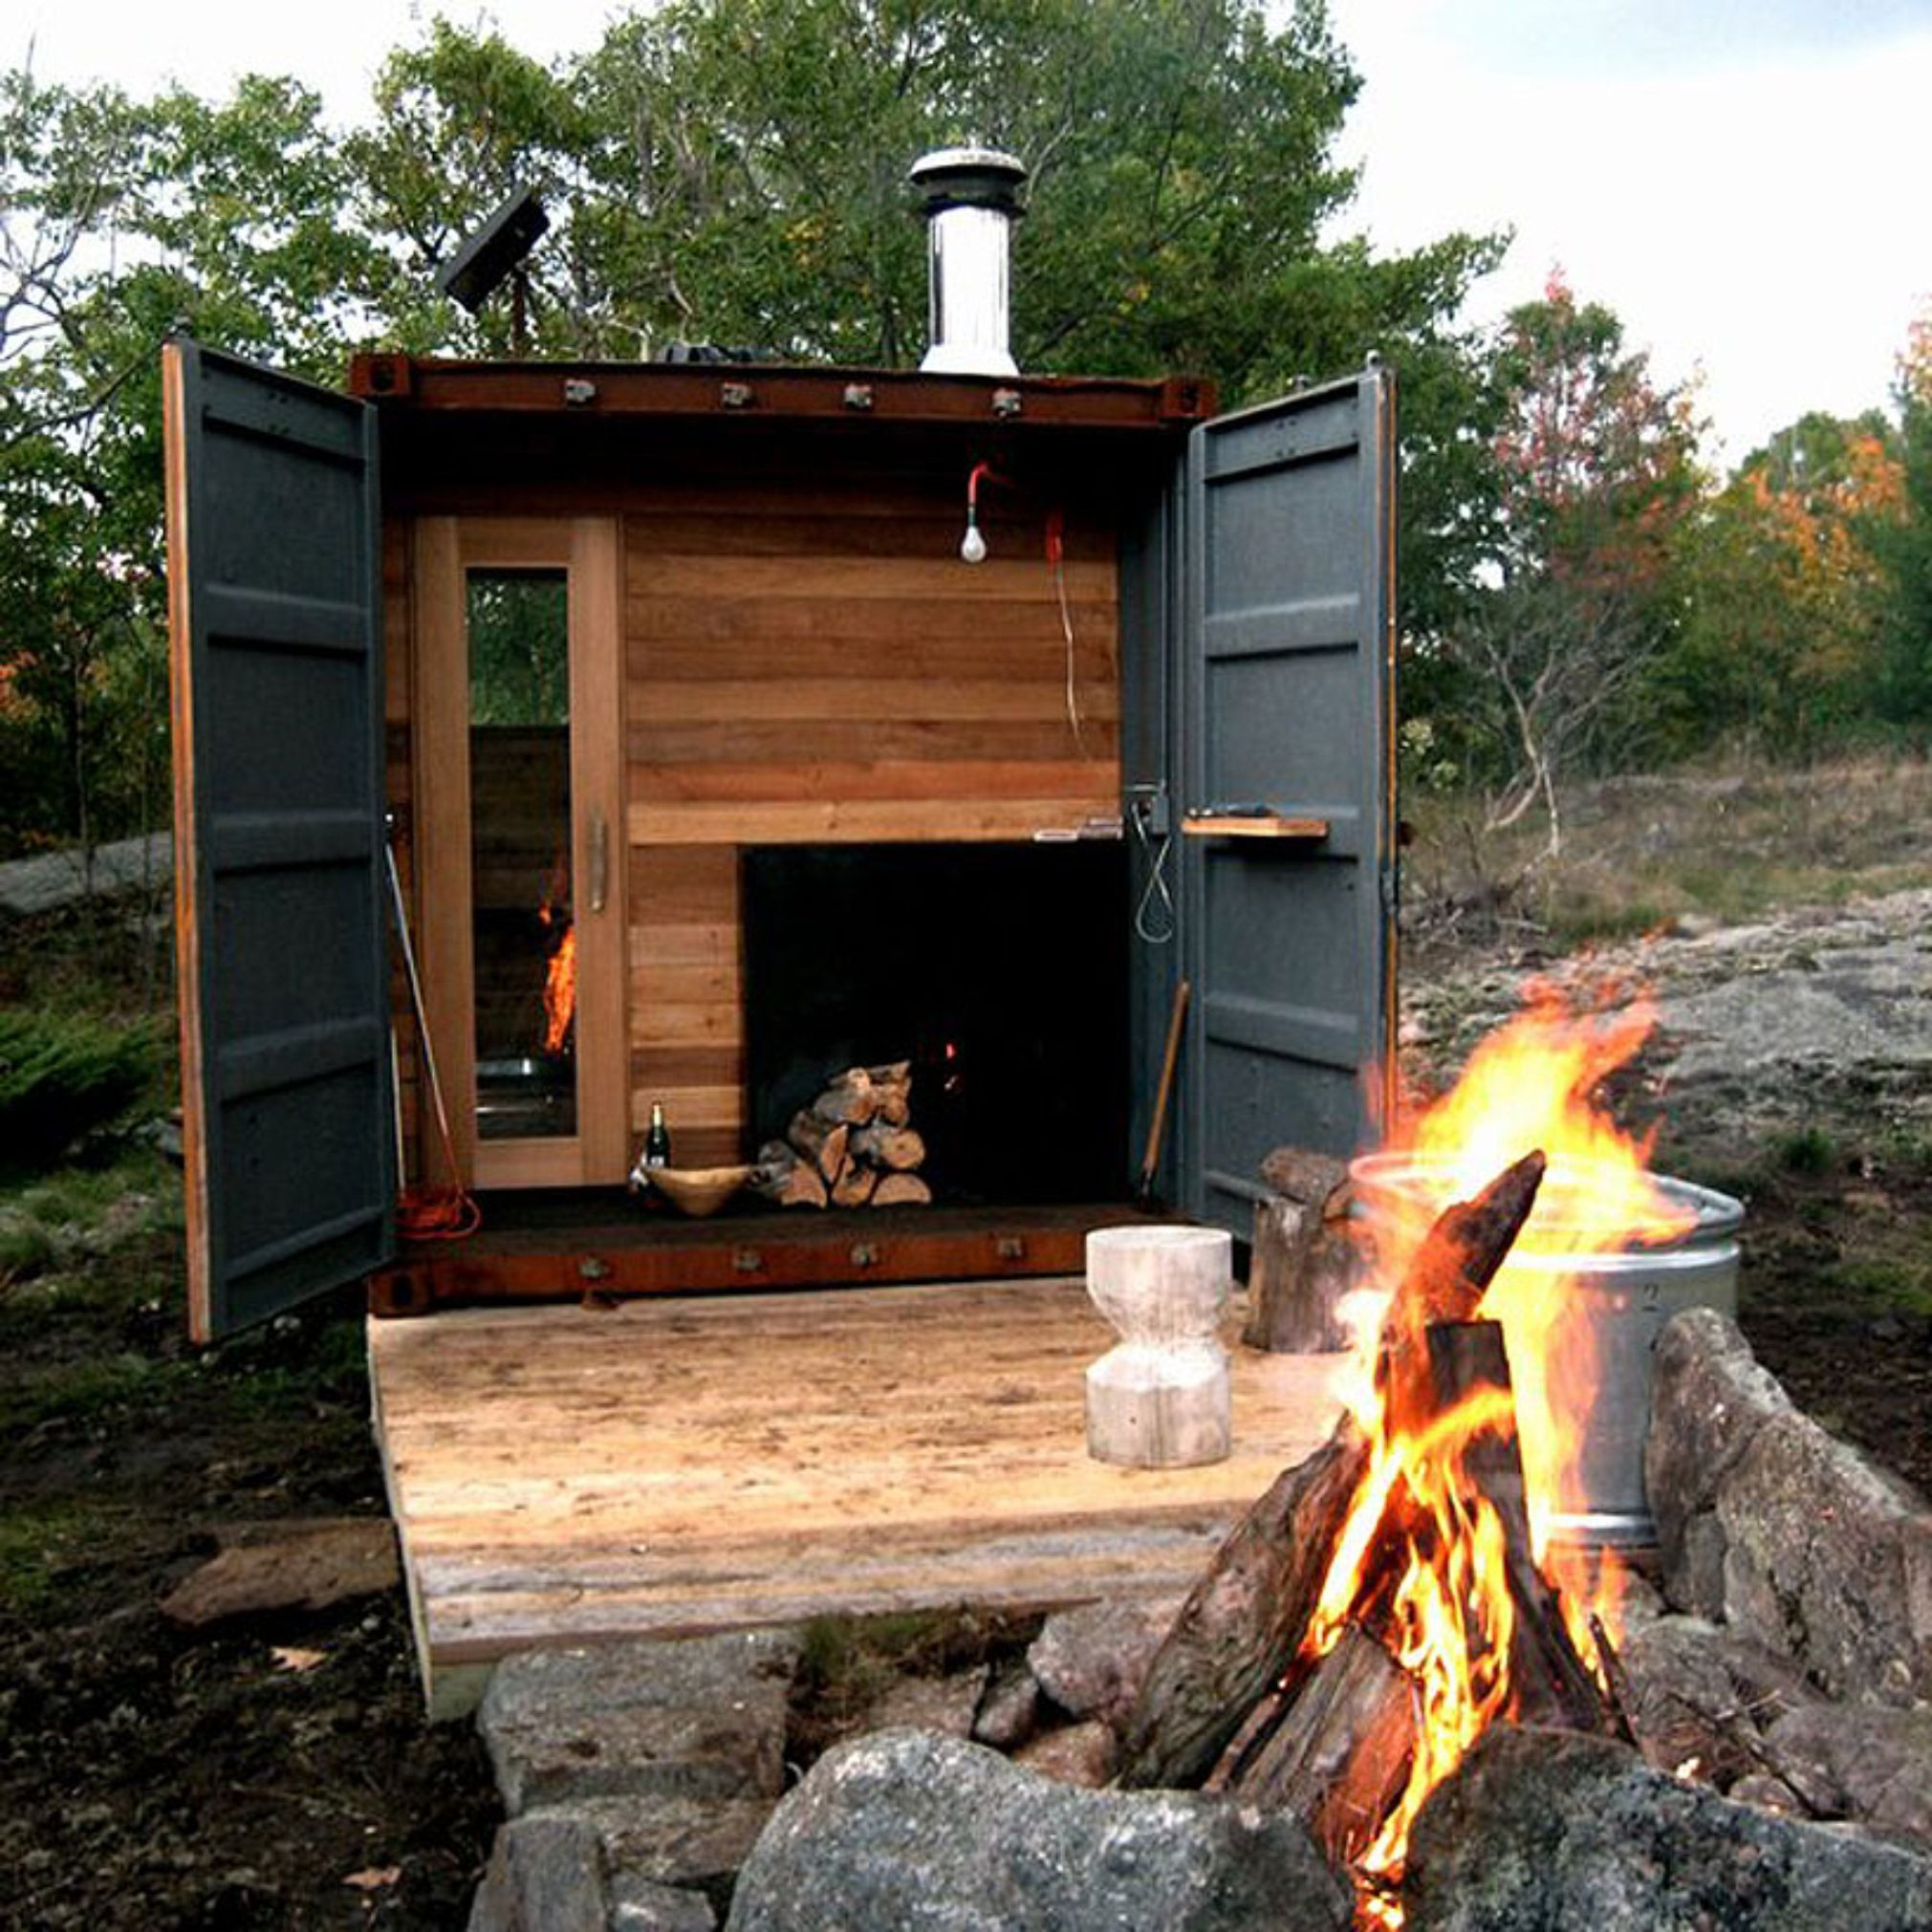 Wonderful House, Outdoor Sauna Design And Construction Made From Shipping Container:  How To Make A